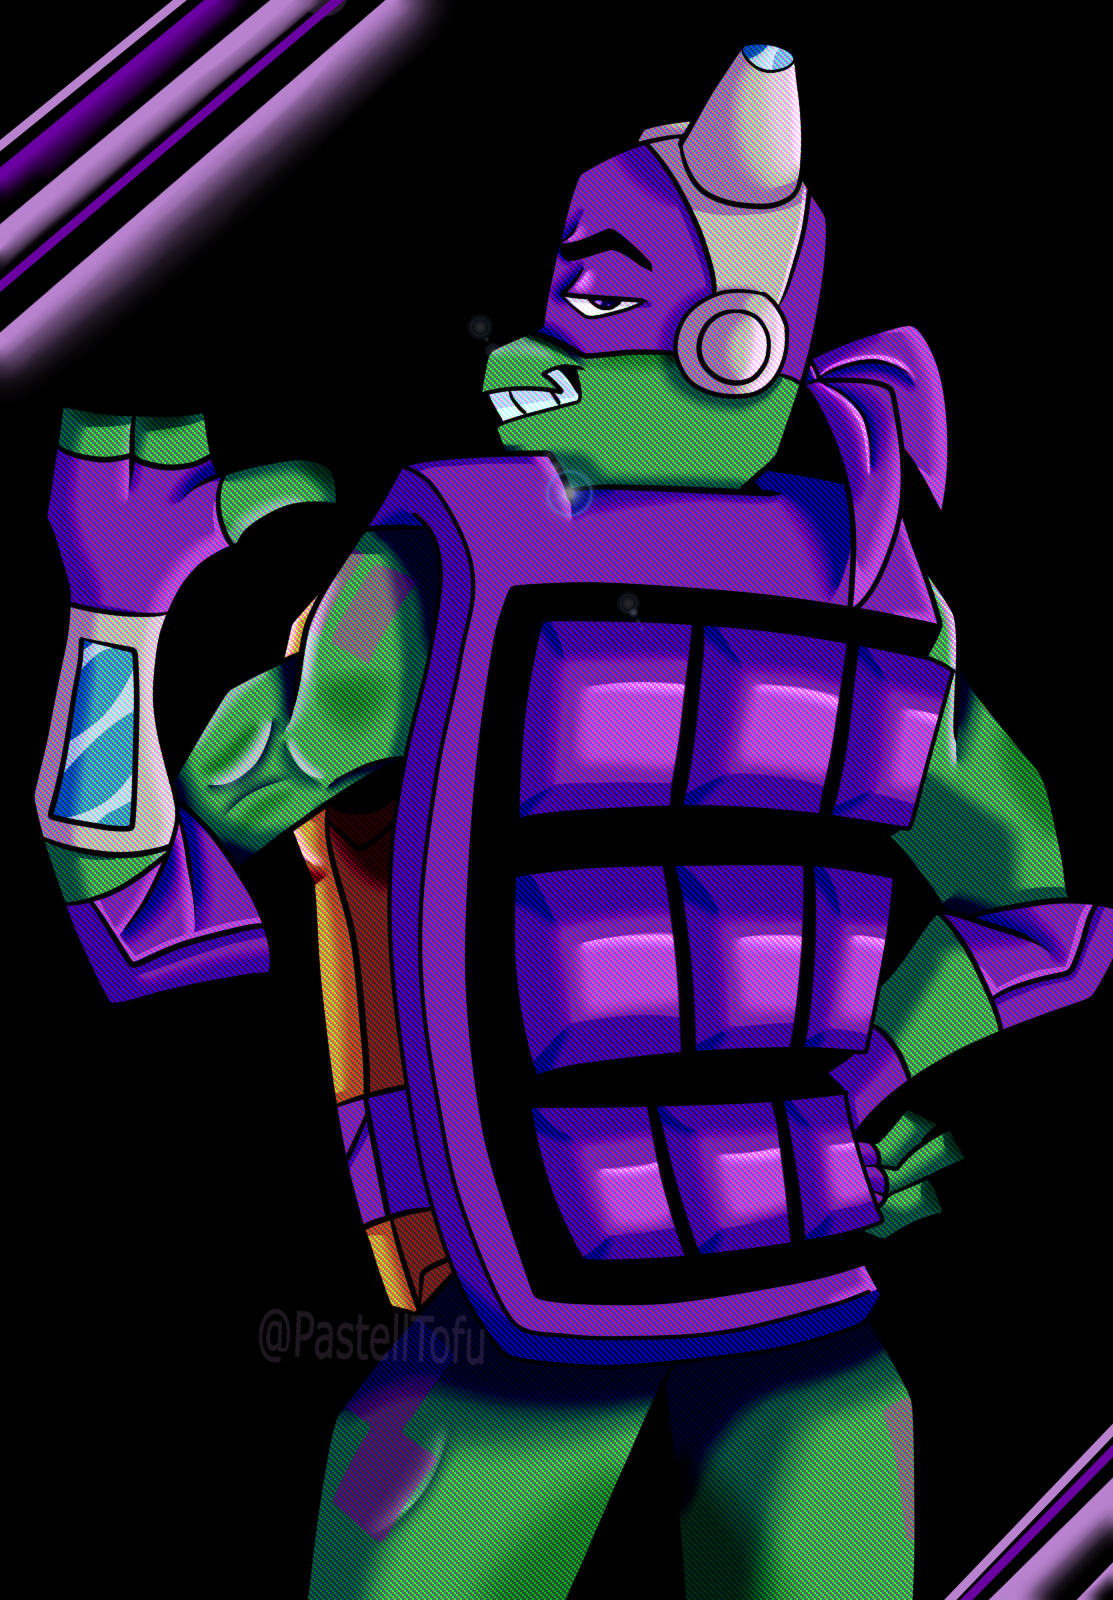 RotTMNT-the Don